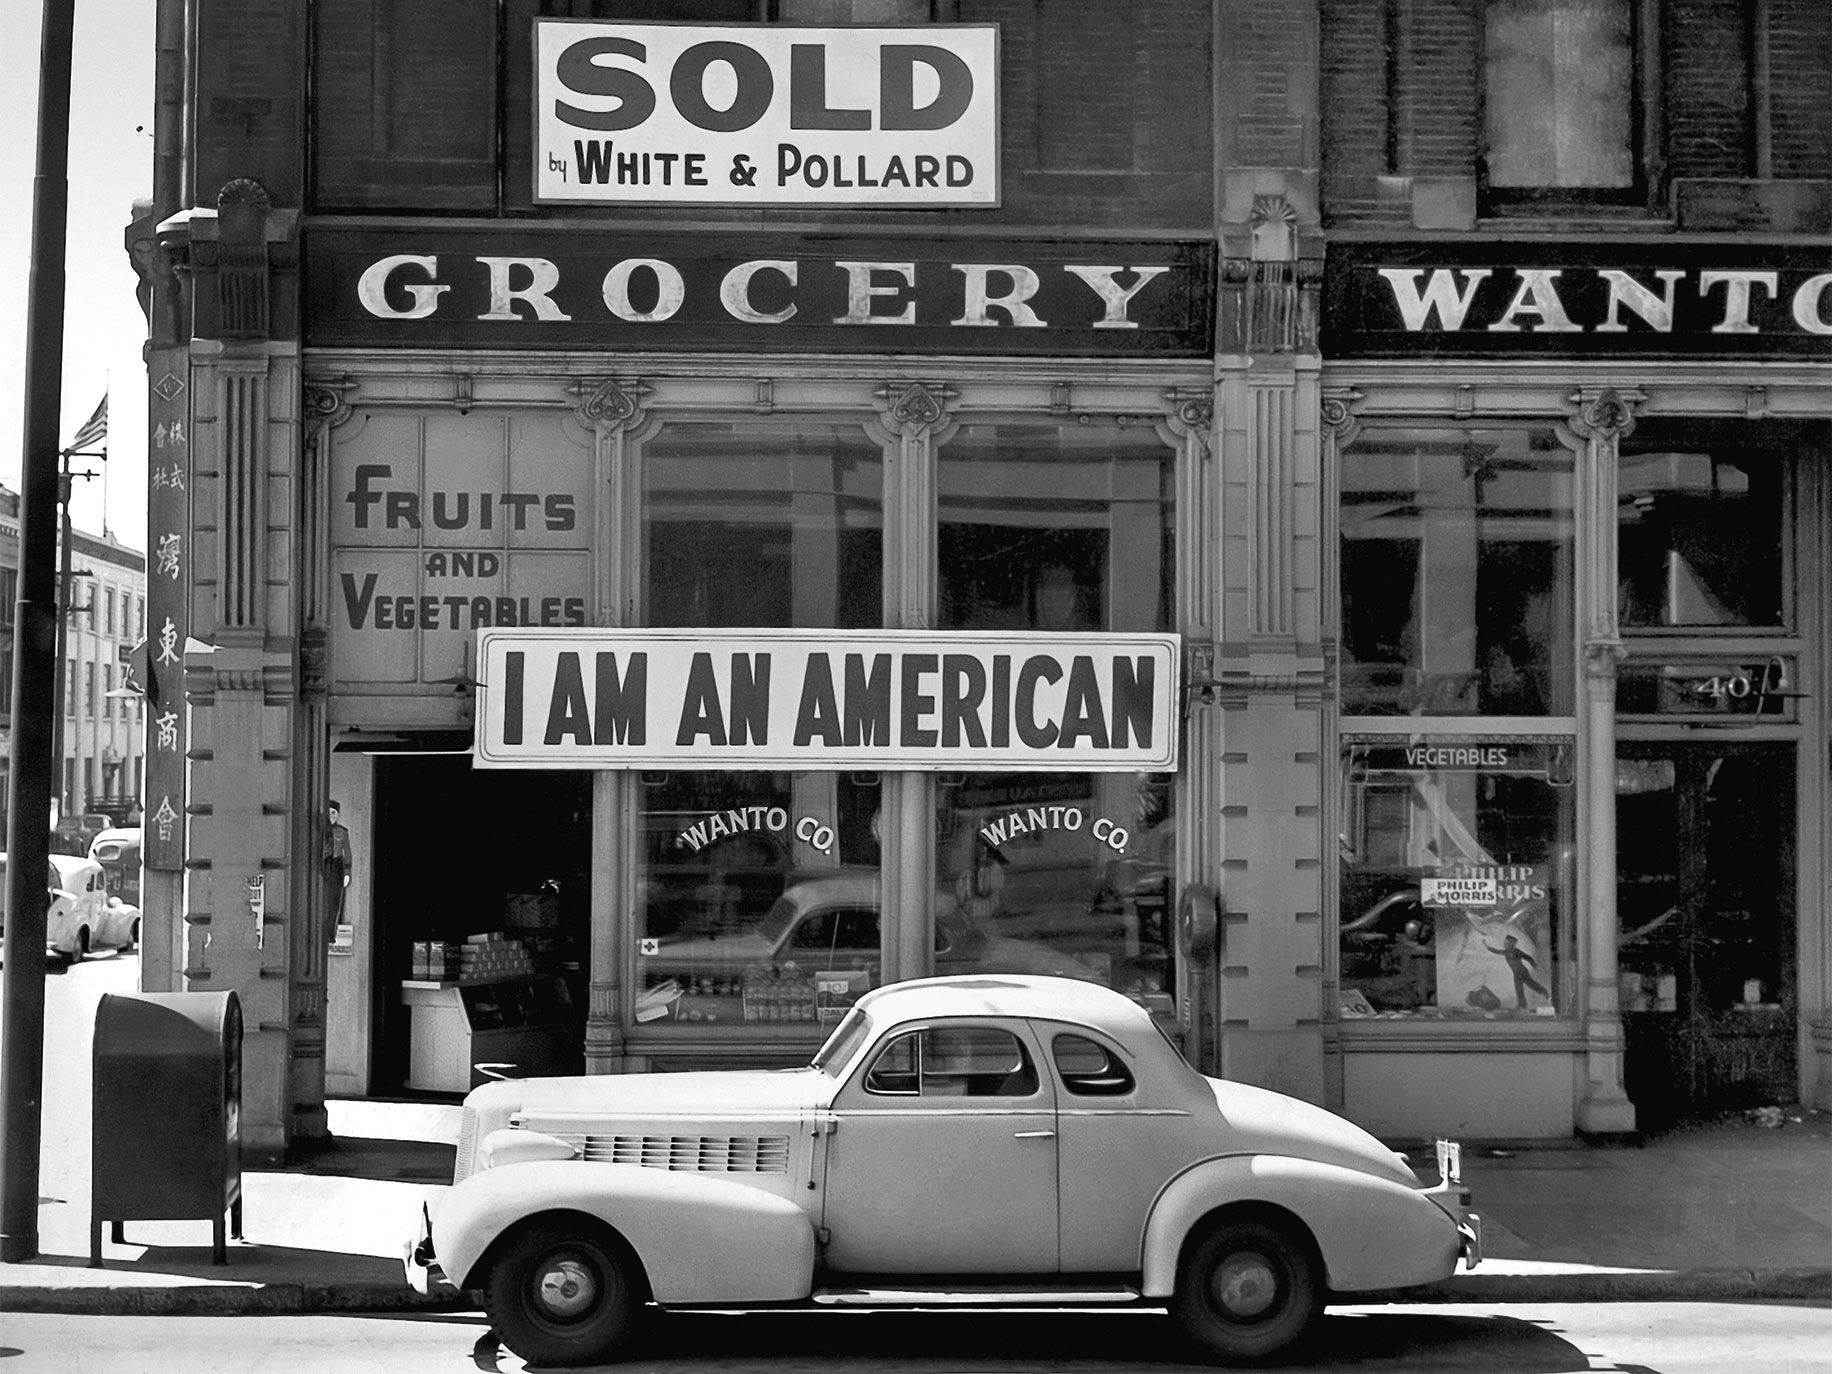 "Below: Owned by the Masuda family, the Wanto Shokai grocery store was located in downtown Oakland. Tetsuo Masuda, a graduate of UC Berkeley, took over the business after his sisters, Mineko and Yoshiko, were sent to an internment camp. Tetsuo created the ""I Am an American"" sign in 1943. The remaining family members moved to Fresno County, hoping they would not be evacuated. The whole family ended up at the Gila River Relocation Center, in Arizona."